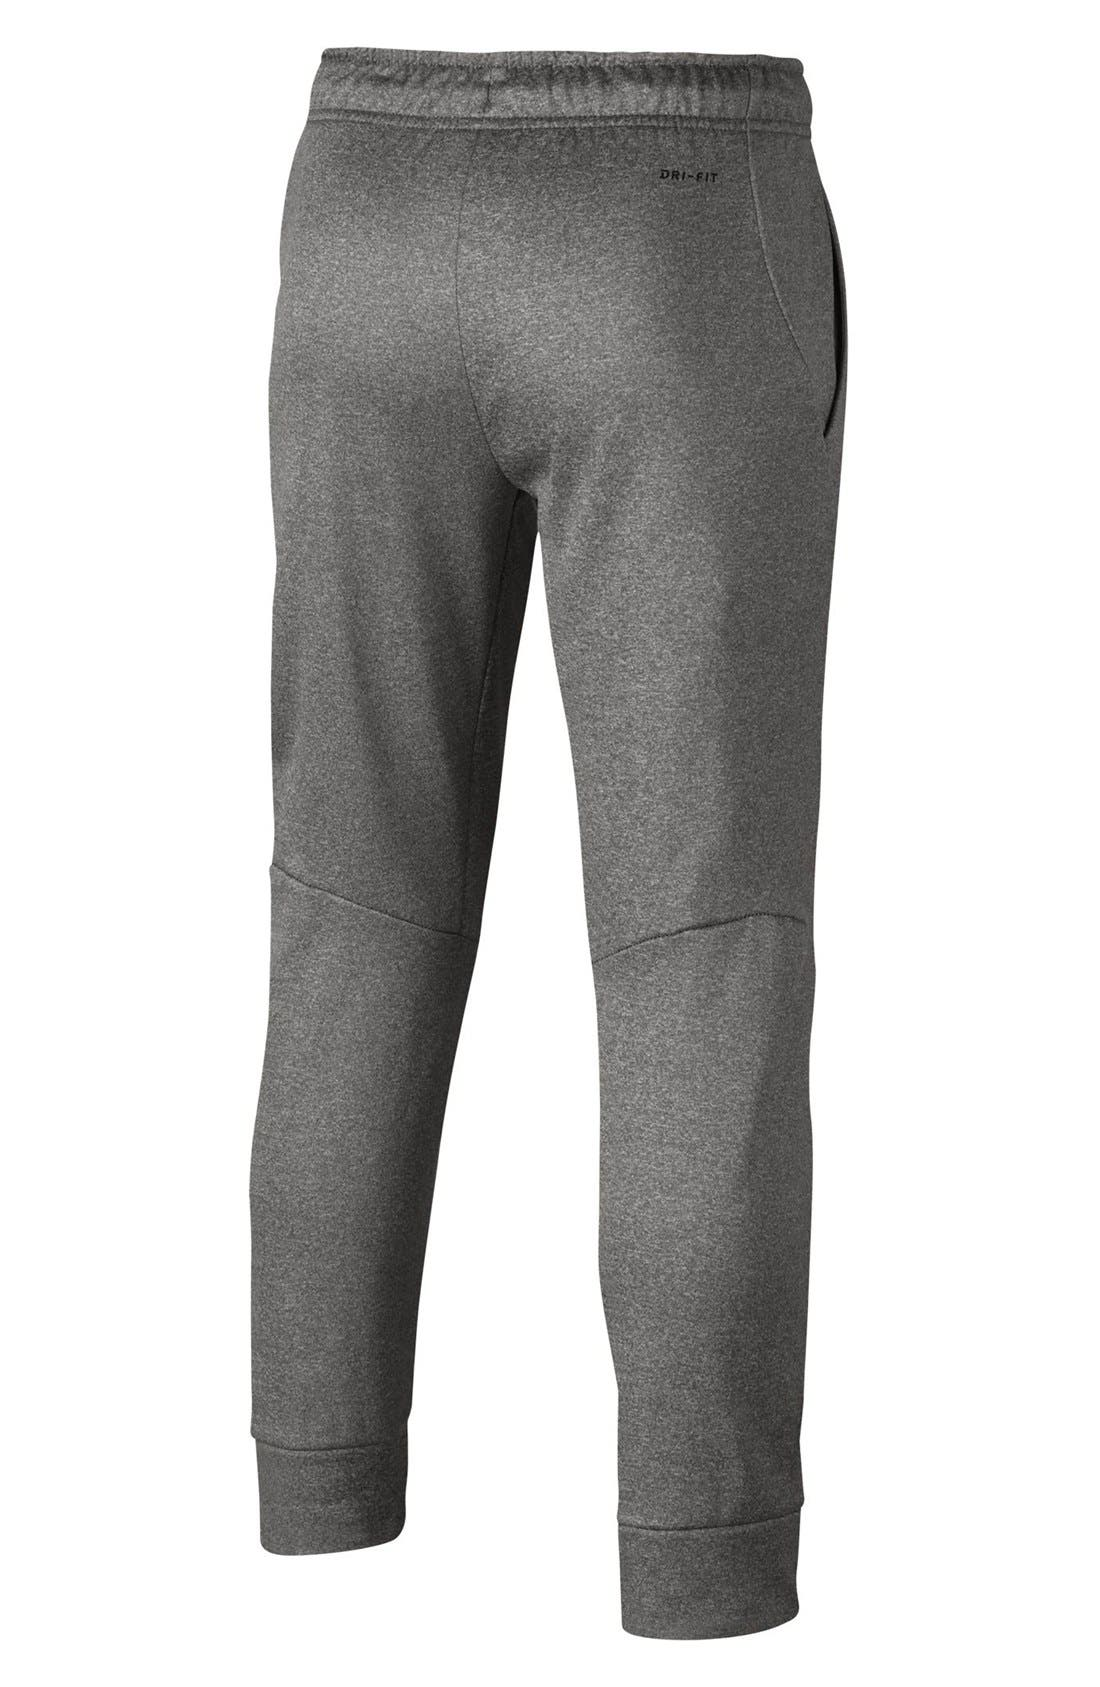 Therma-FIT Tapered Fleece Pants,                             Alternate thumbnail 10, color,